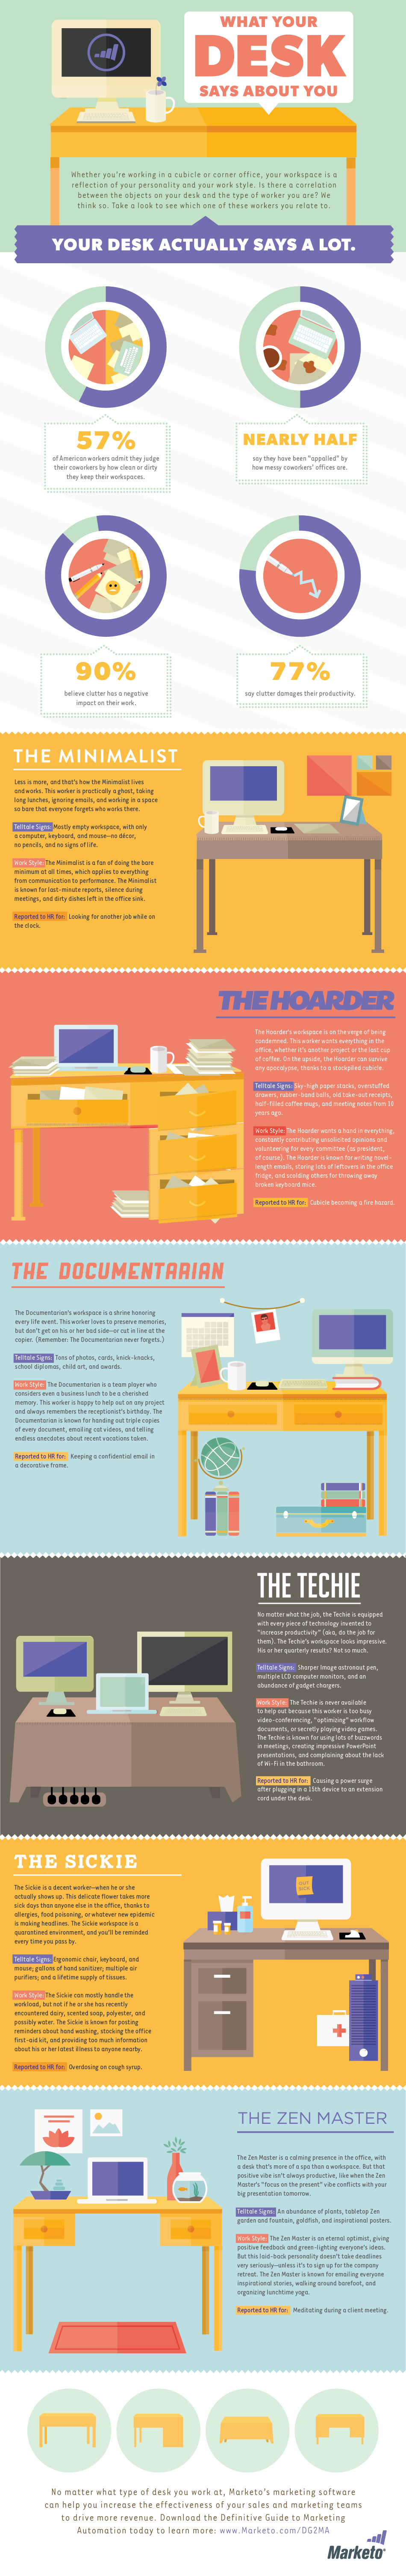 What-Your-Desk-Says-About-You-Infographic